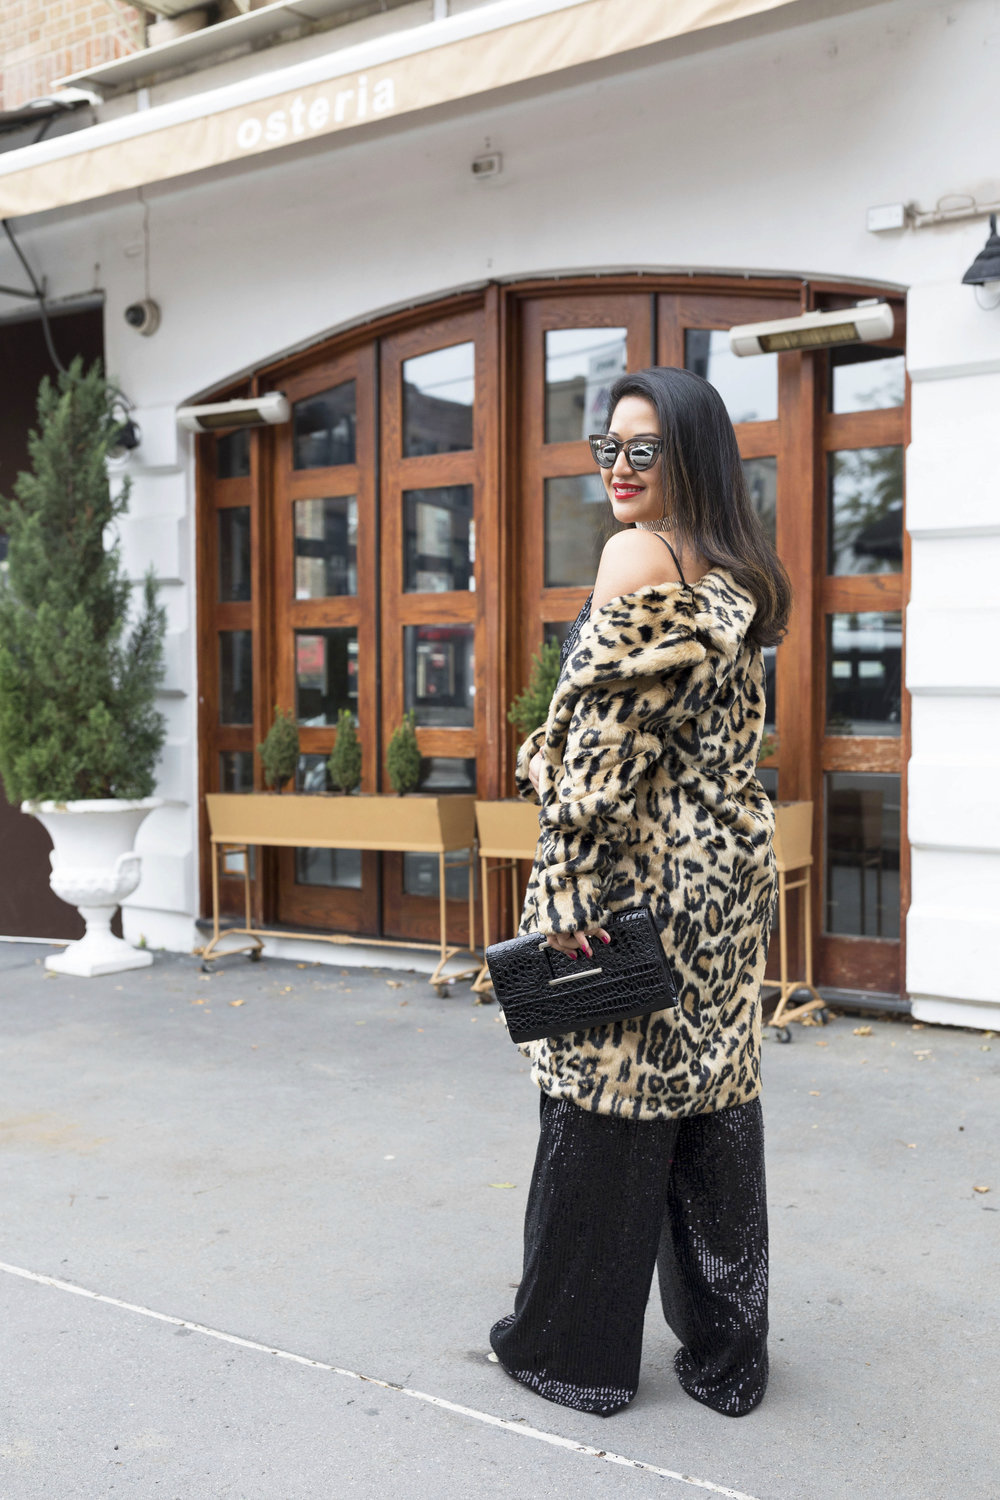 Krity S x New Years Eve Outfit x Sequin Jumpsuit and Cheetah Faux Fur10.jpg